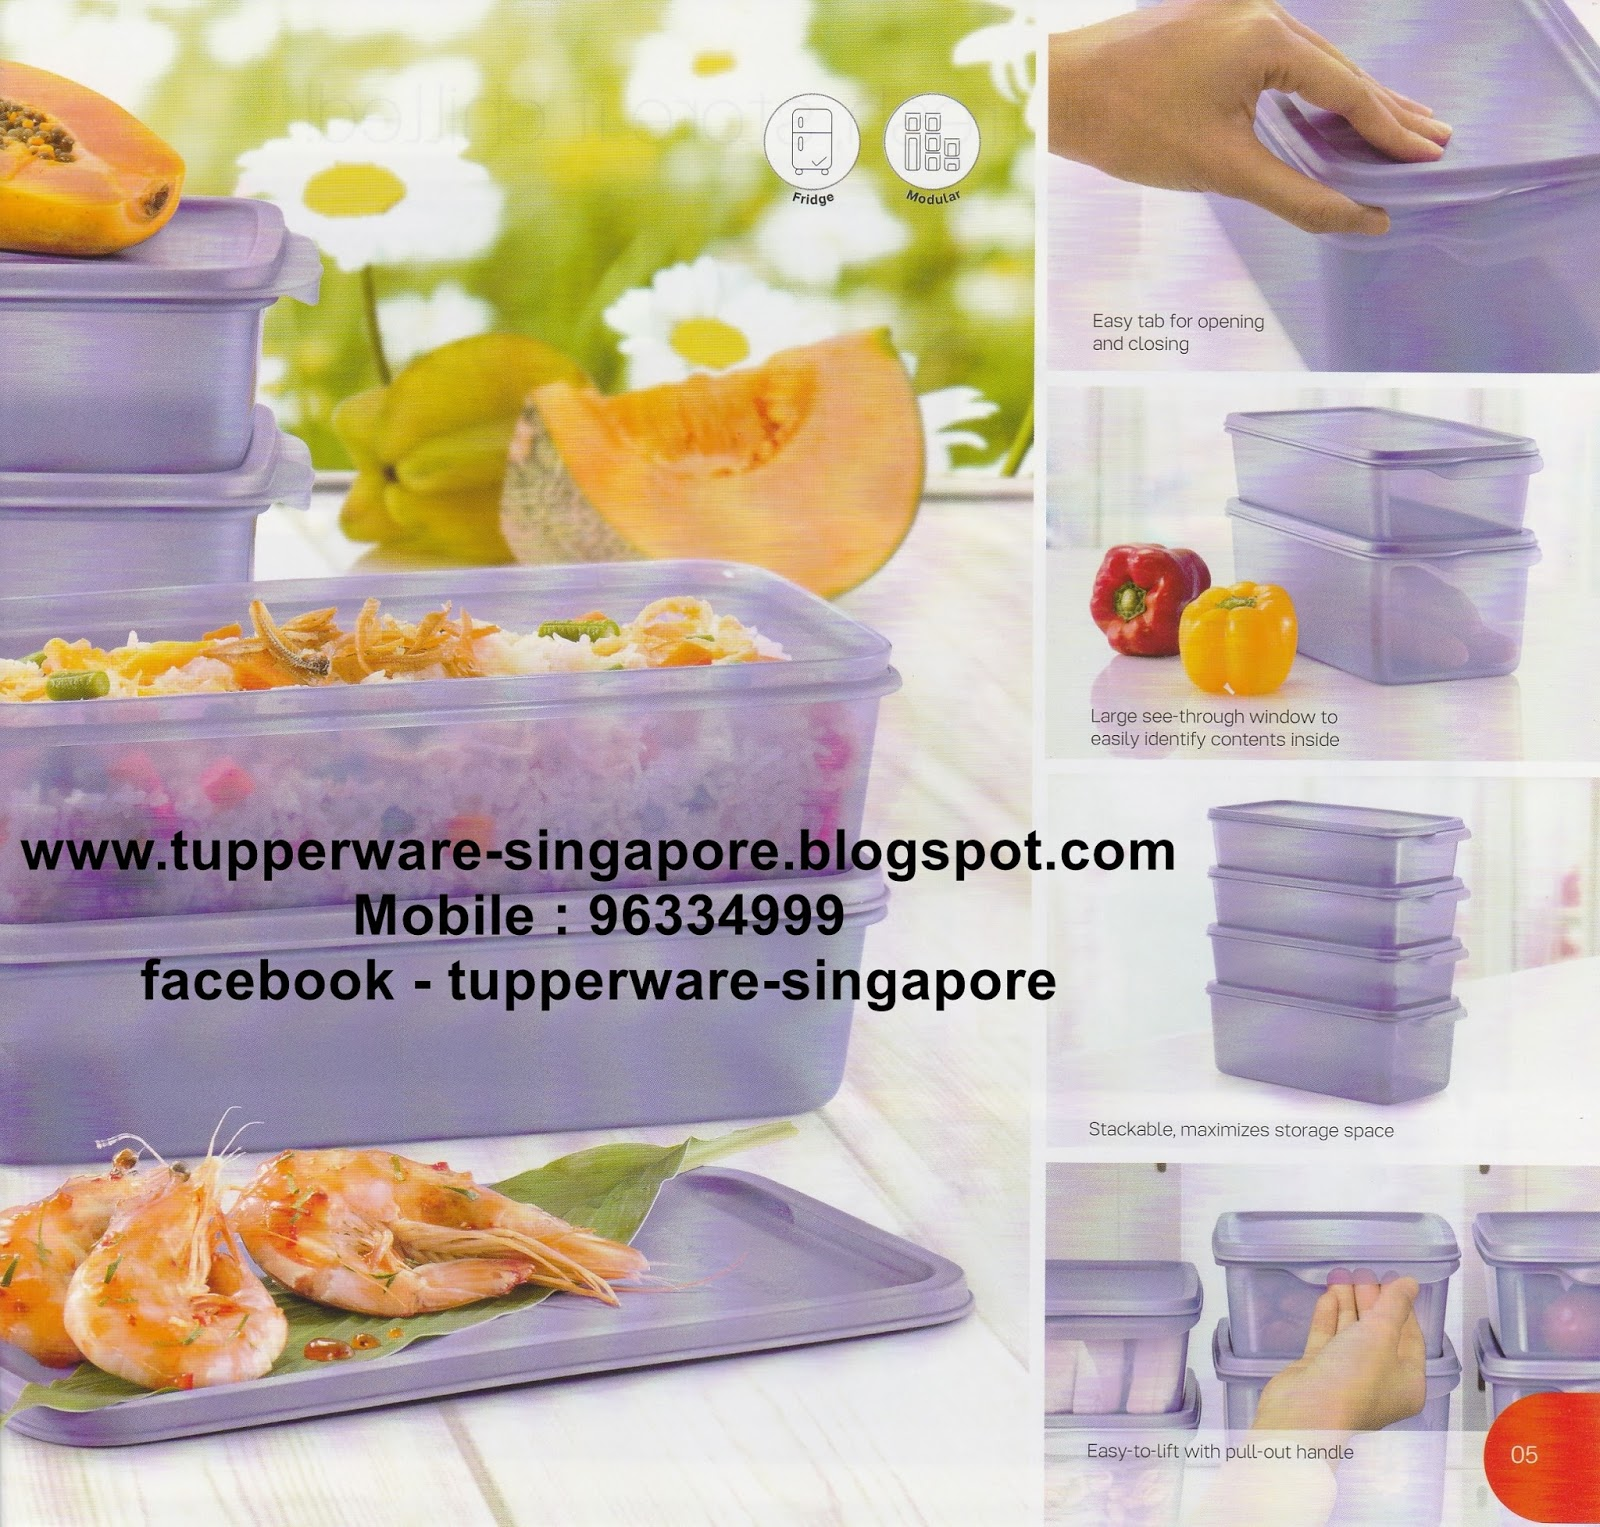 Best Place To Buy Kitchen Utensils In Singapore